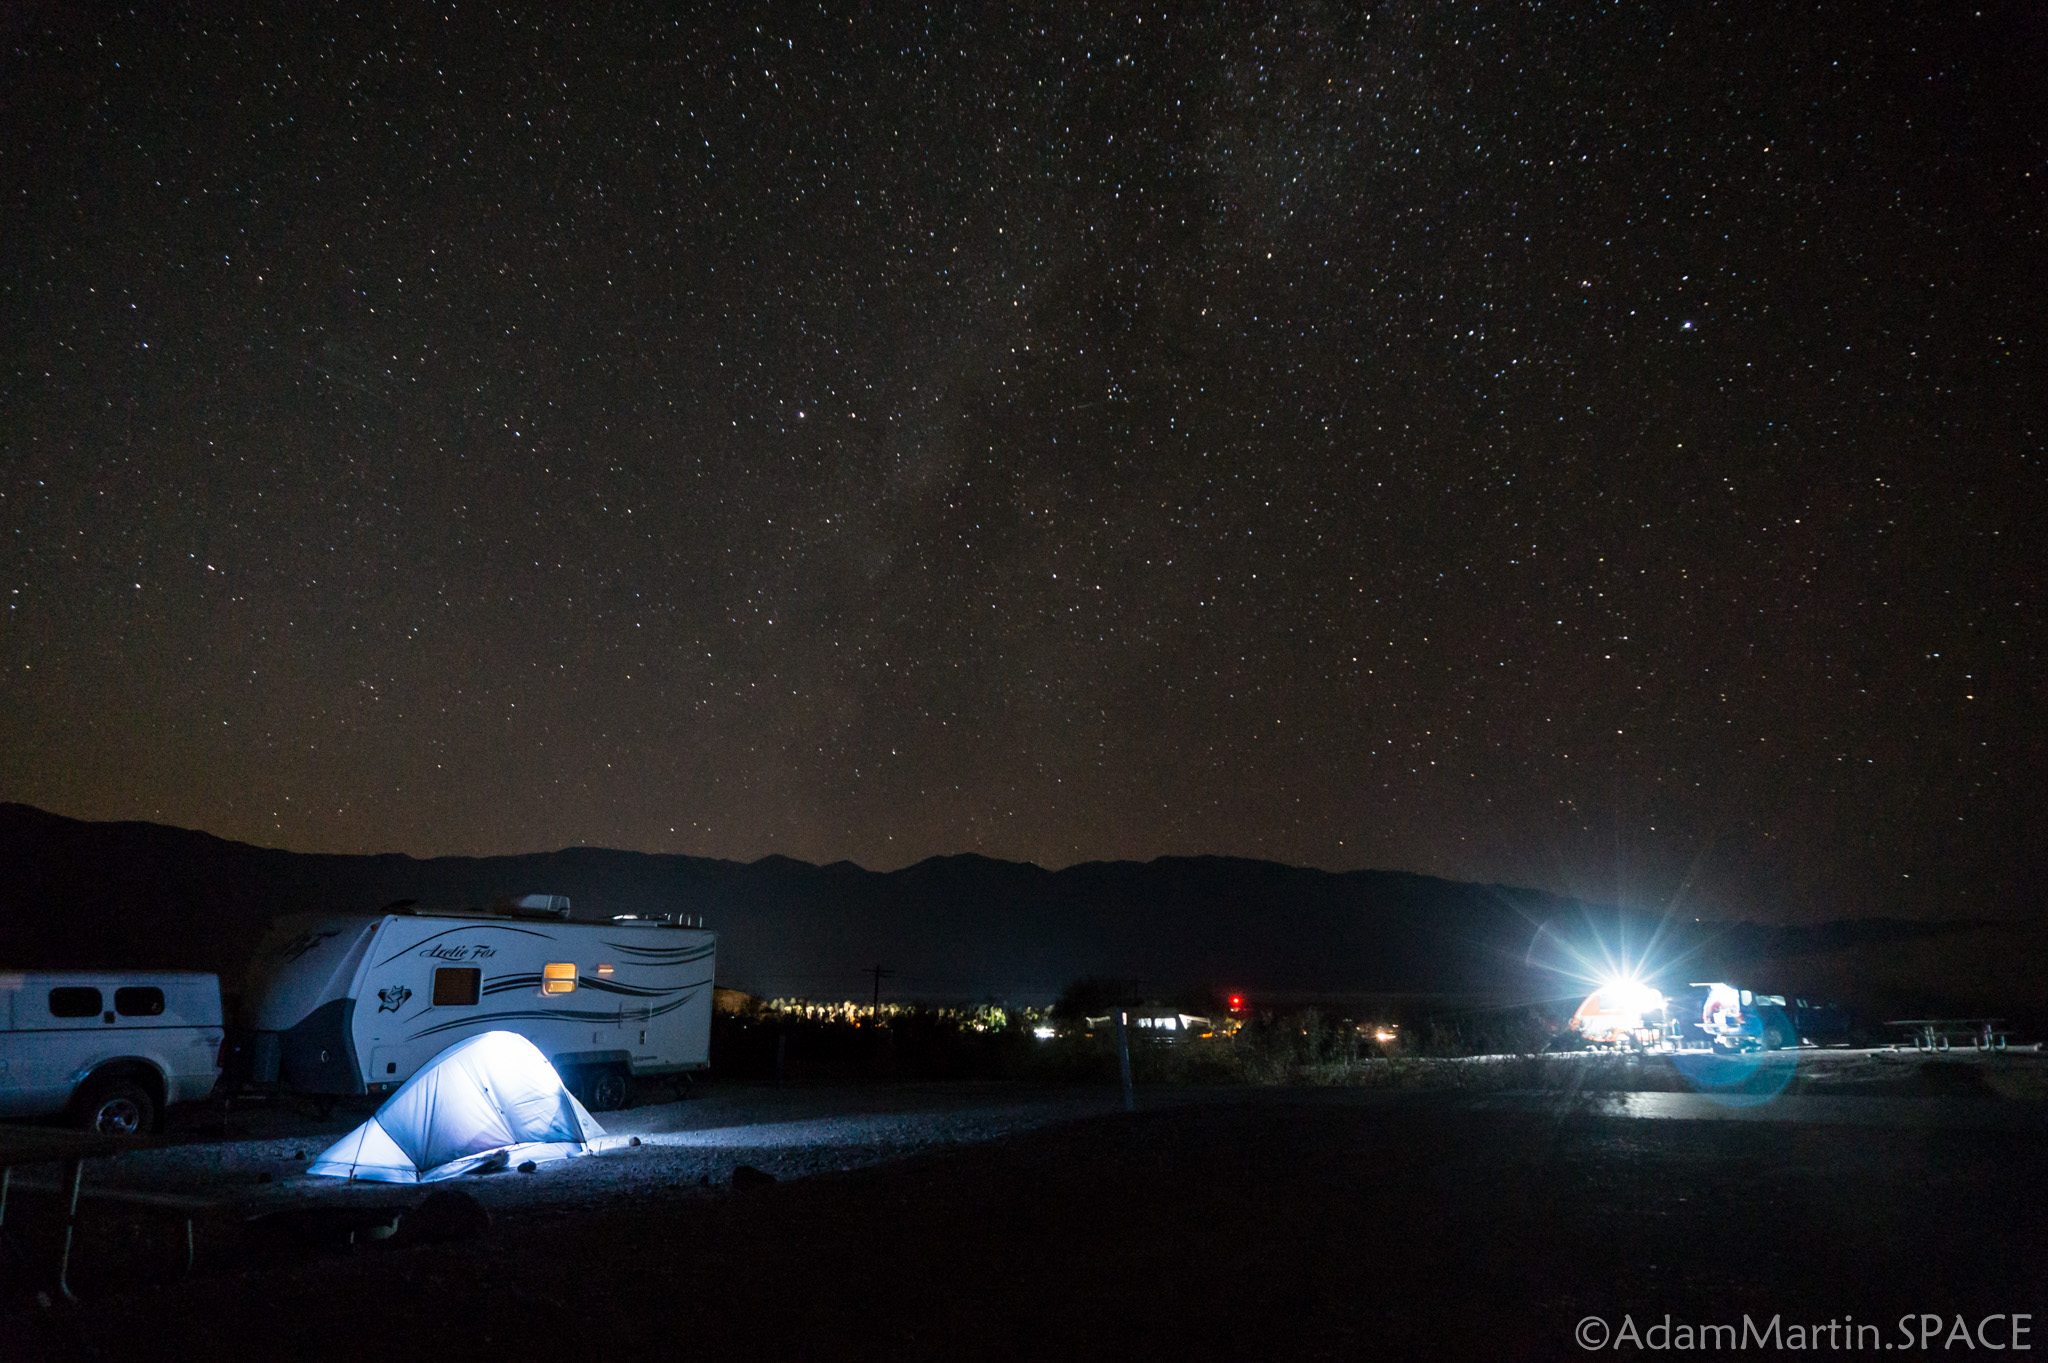 Death Valley - Astrophotography at Texas Springs campground